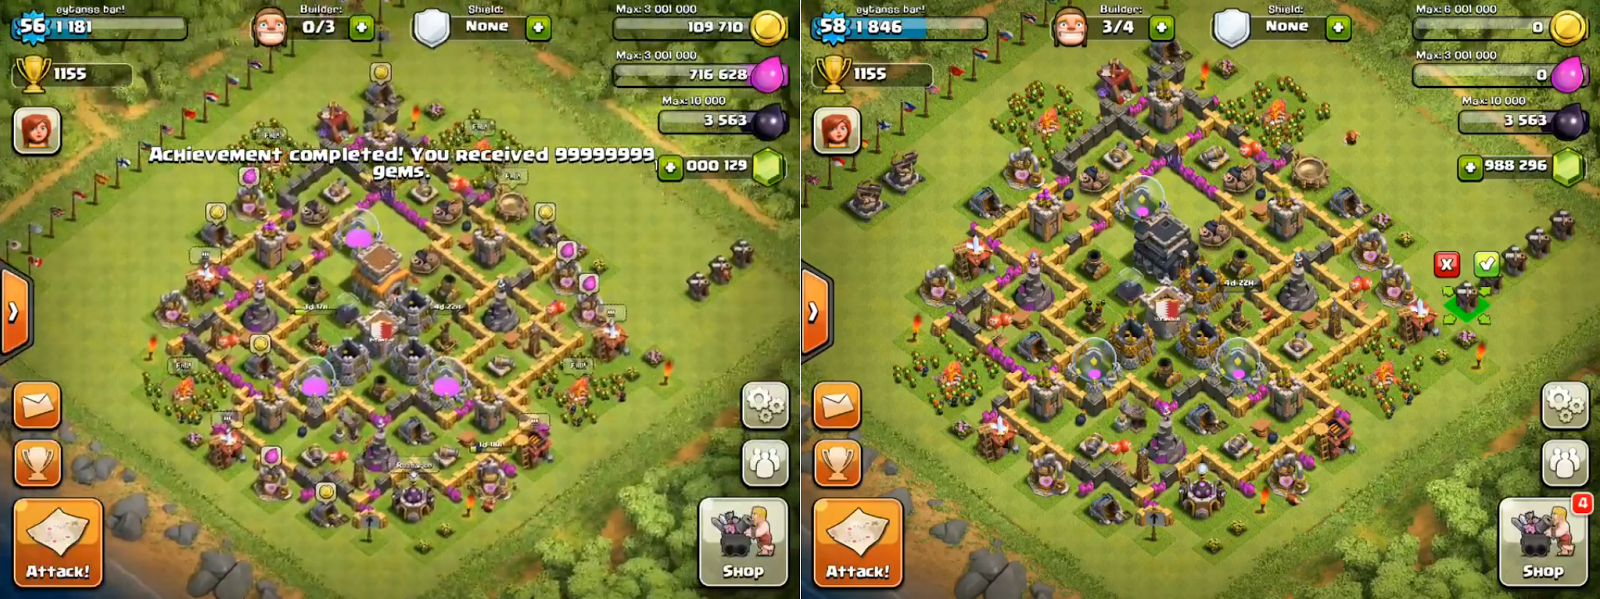 clash of clans hack proof pics